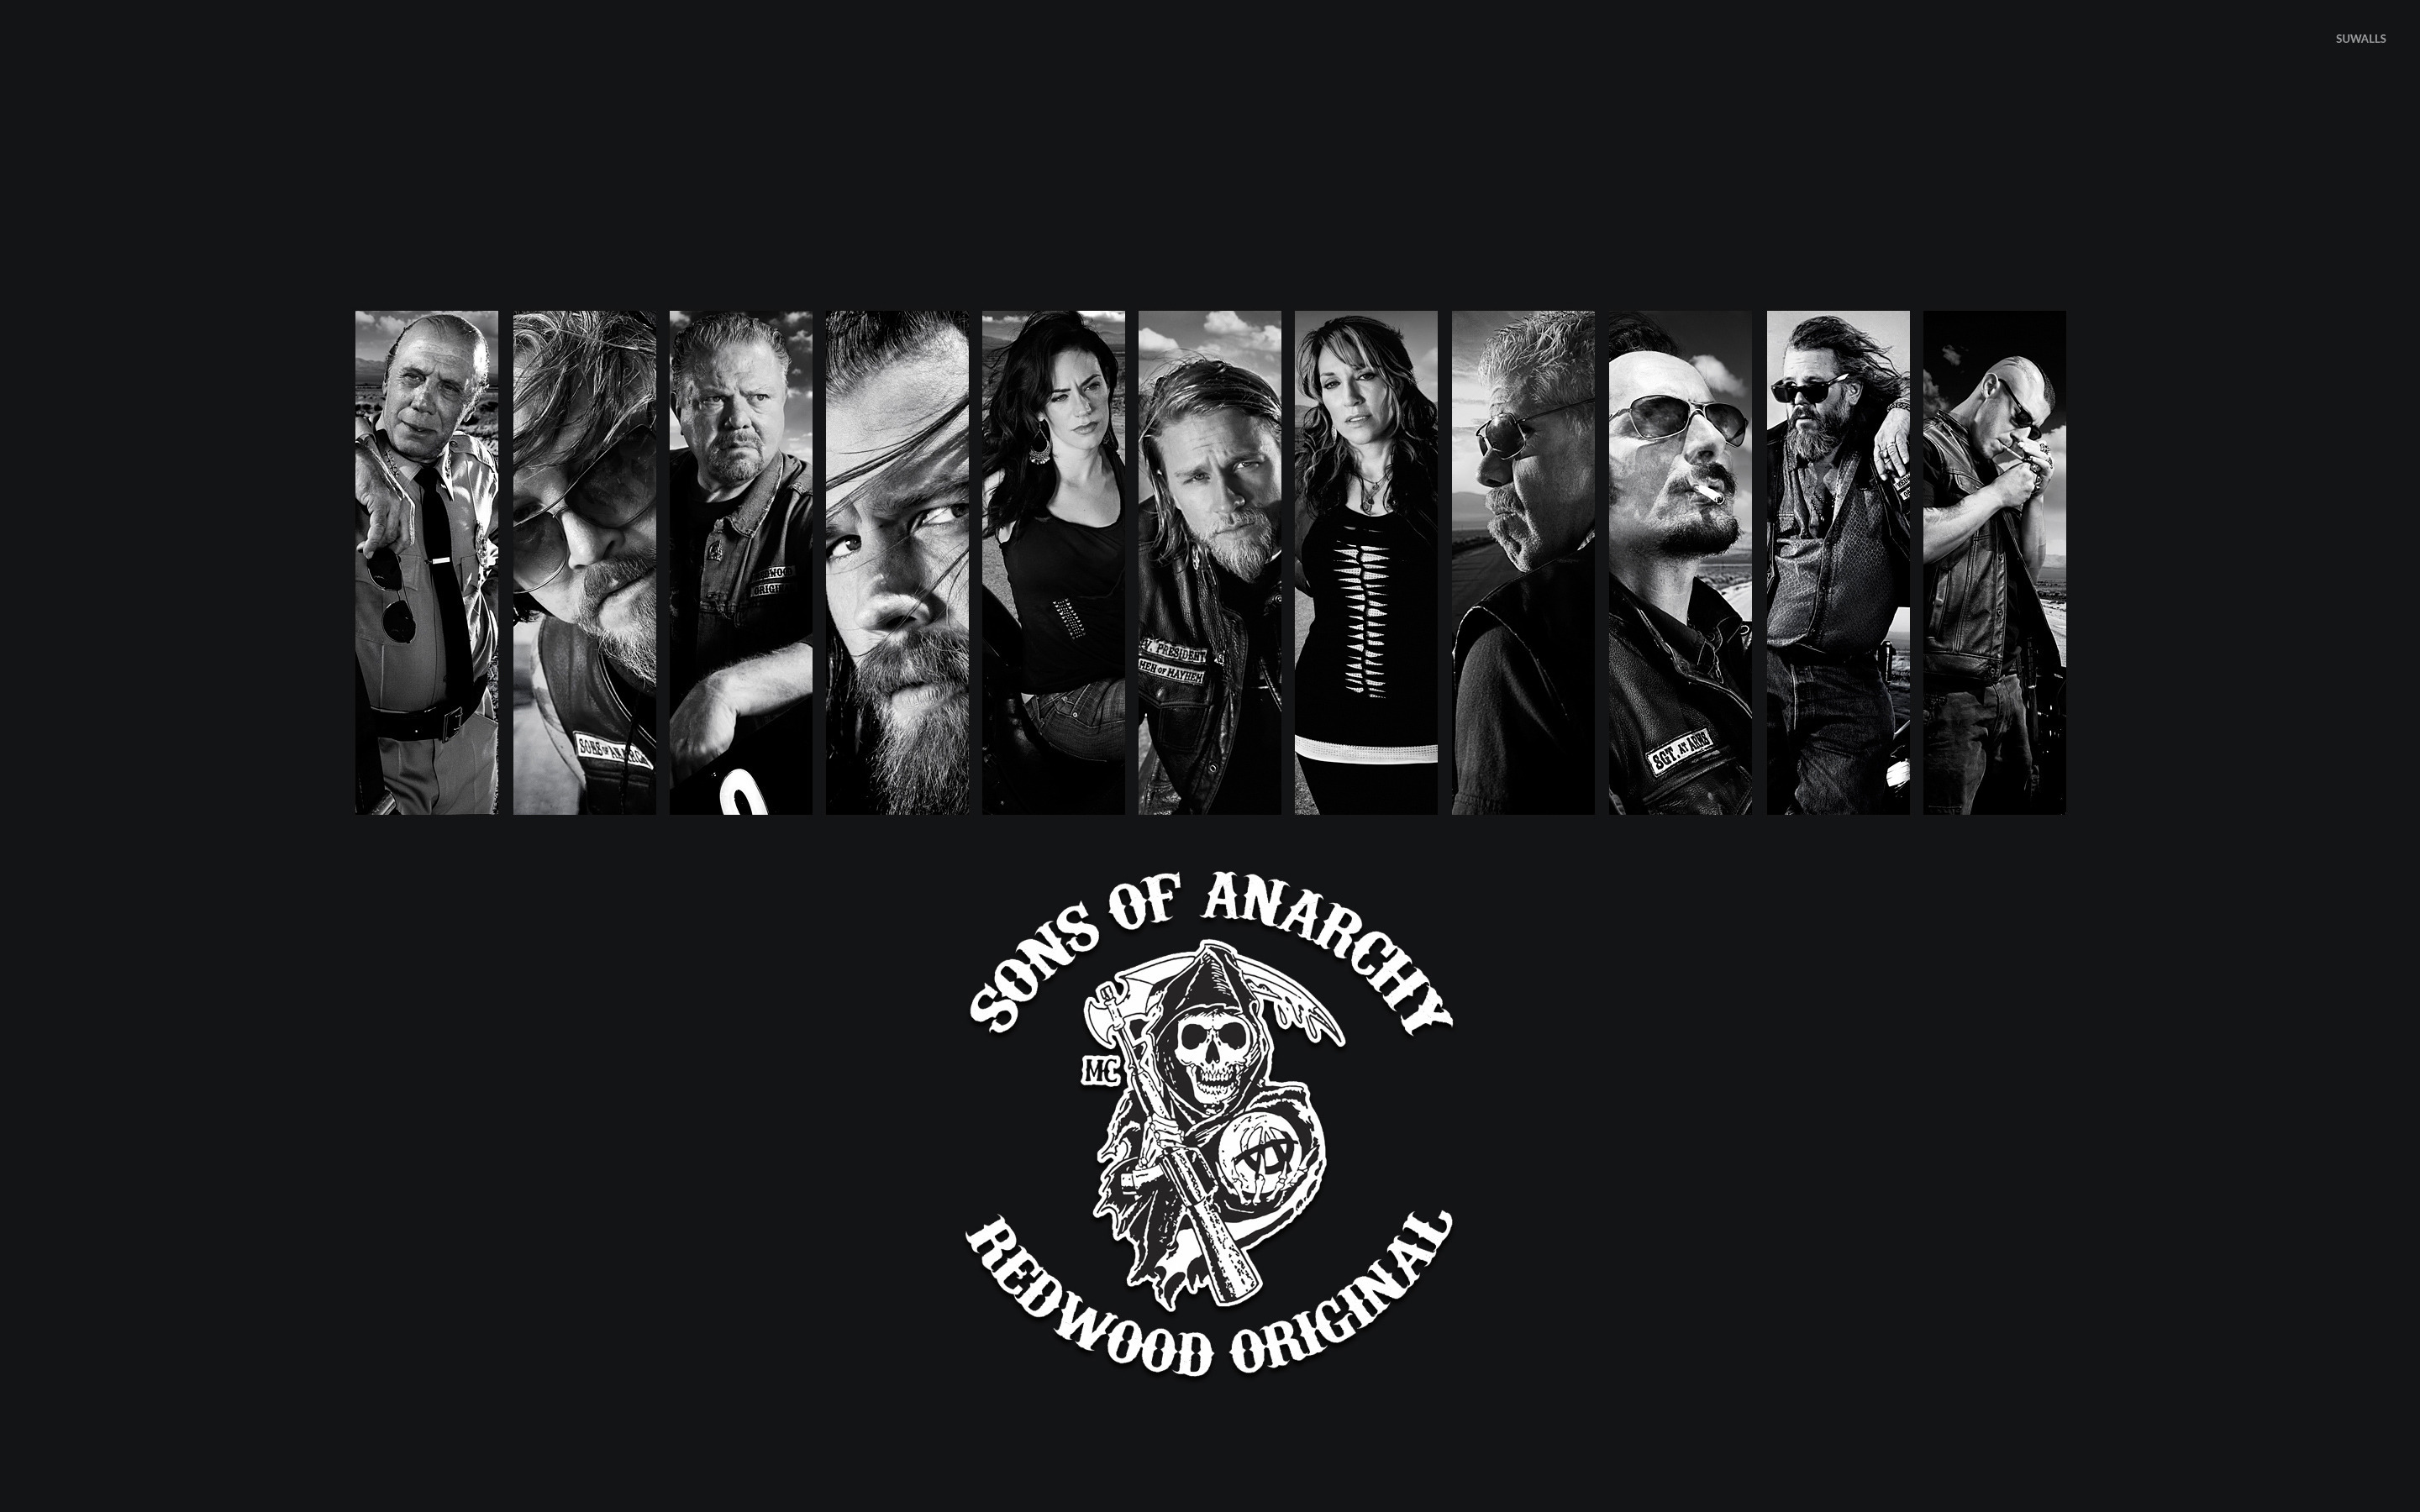 Sons Of Anarchy Wallpaper Tv Show Wallpapers 31502